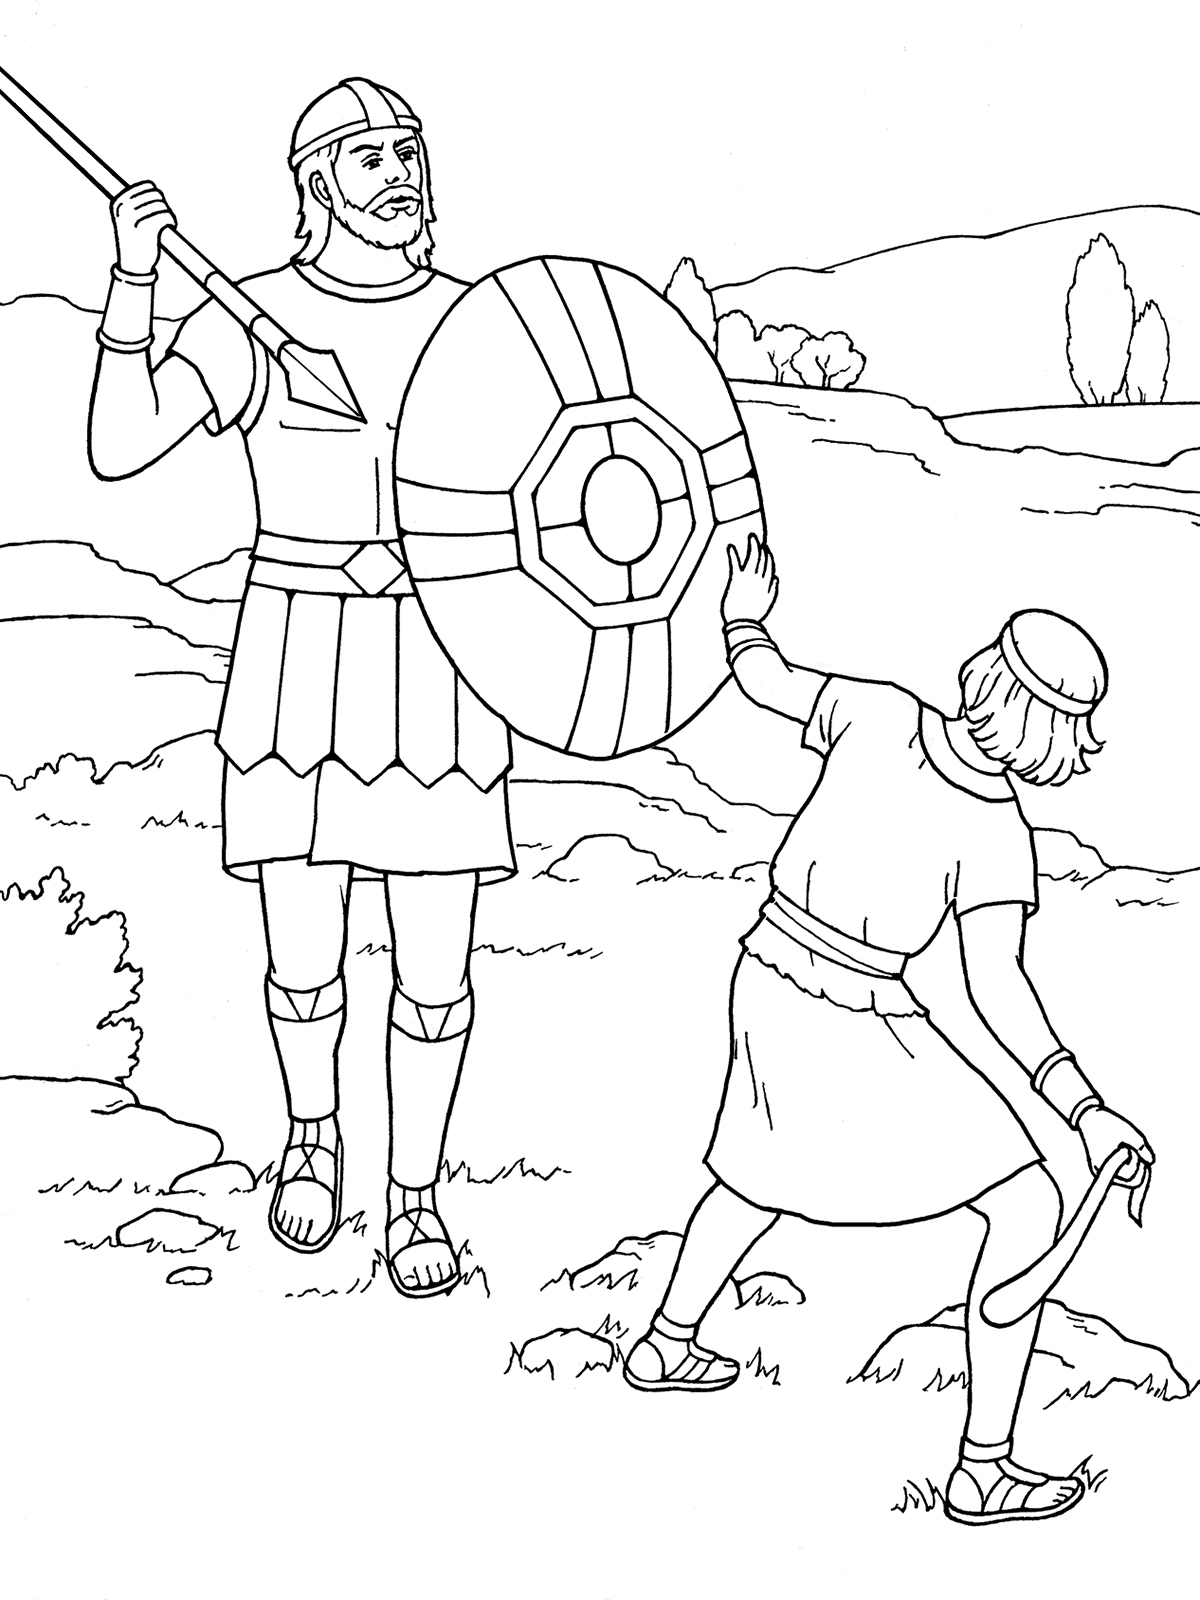 david and goliath coloring page bible story coloring pages rocky mount preschool kids church coloring goliath and david page